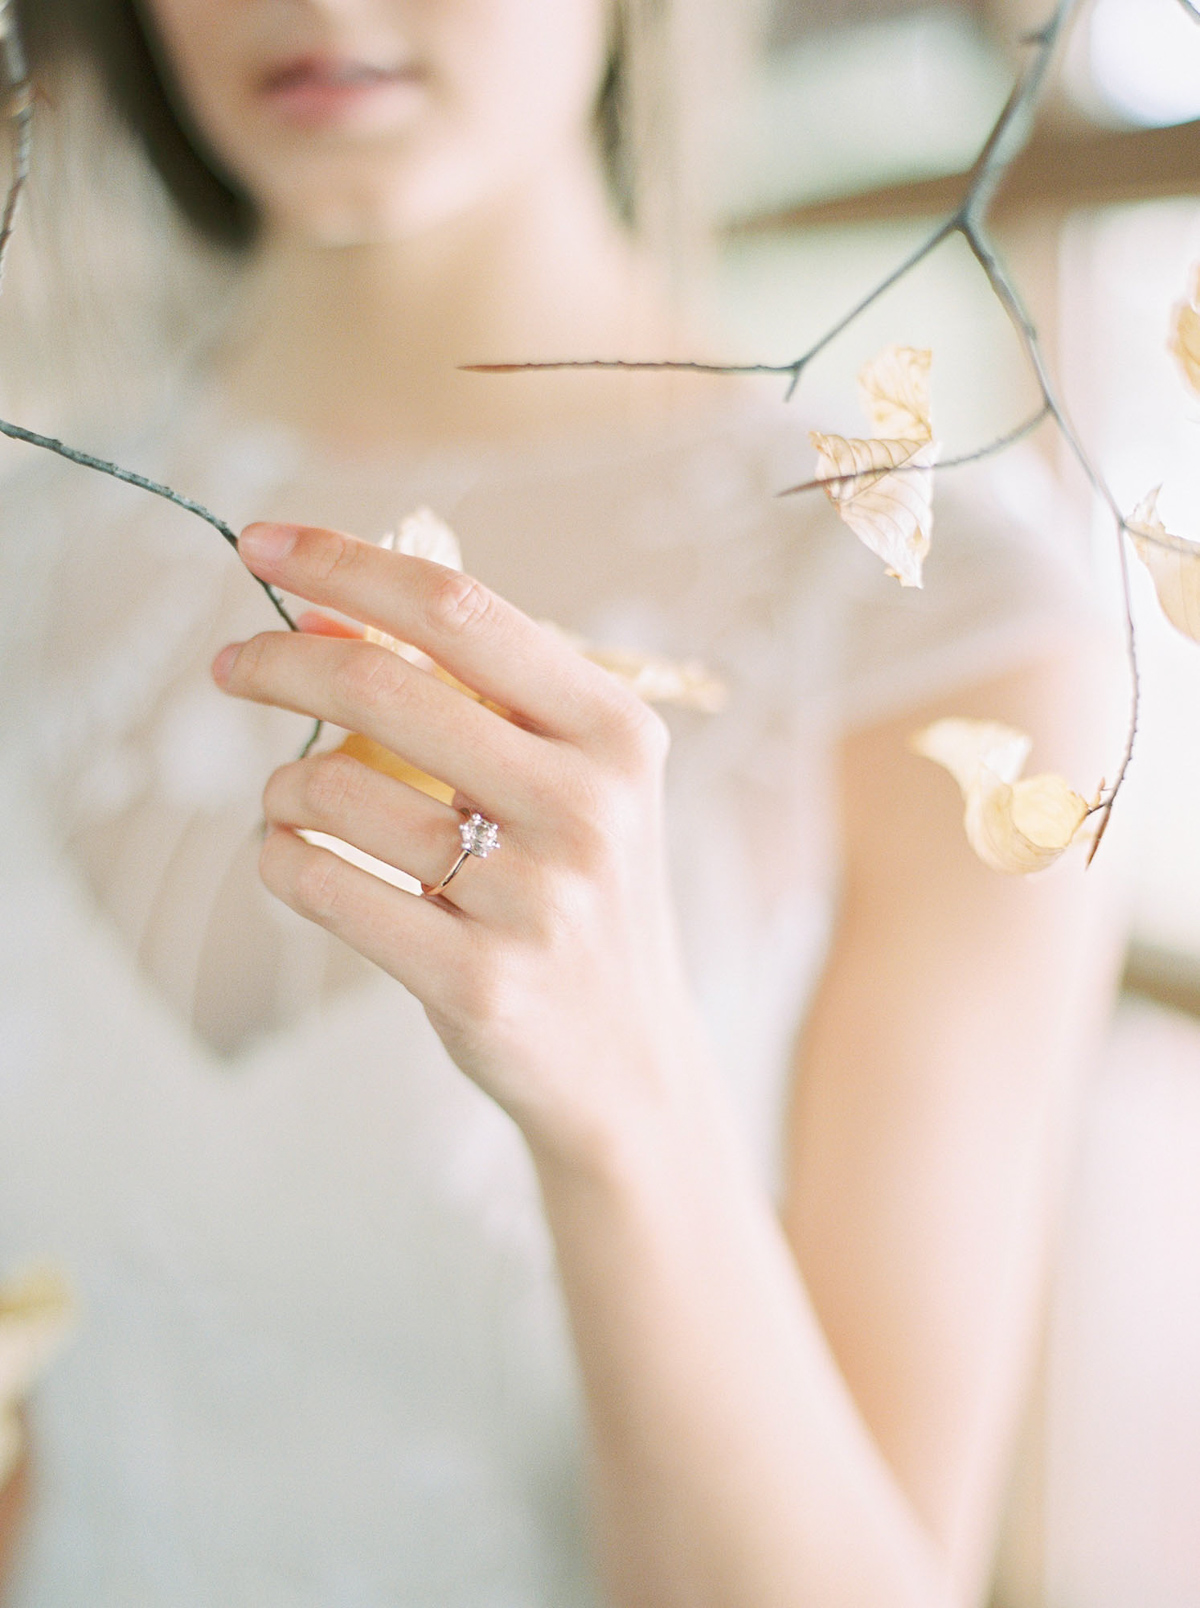 will-reid-photo-vineyard-bride-swish-list-kurtz-orchards-market-niagara-on-the-lake-wedding-editorial-22.jpg